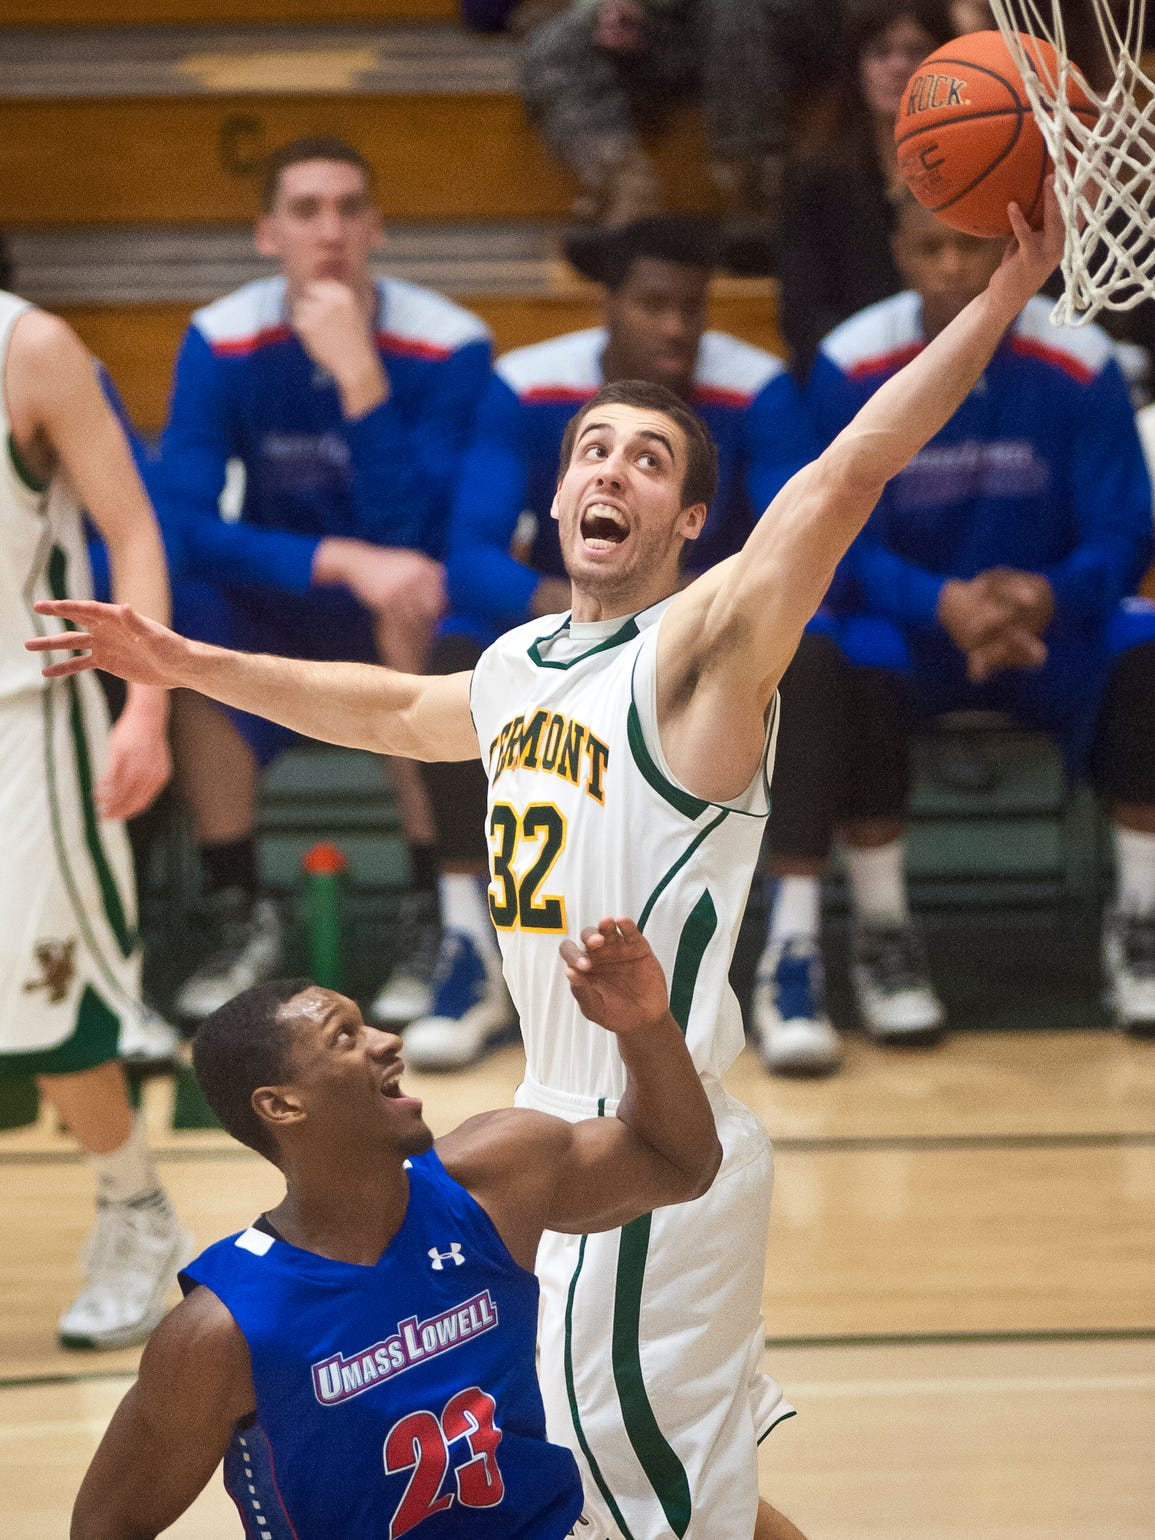 Vermont's Ethan O'Day grabs a rebound over UMass-Lowell's